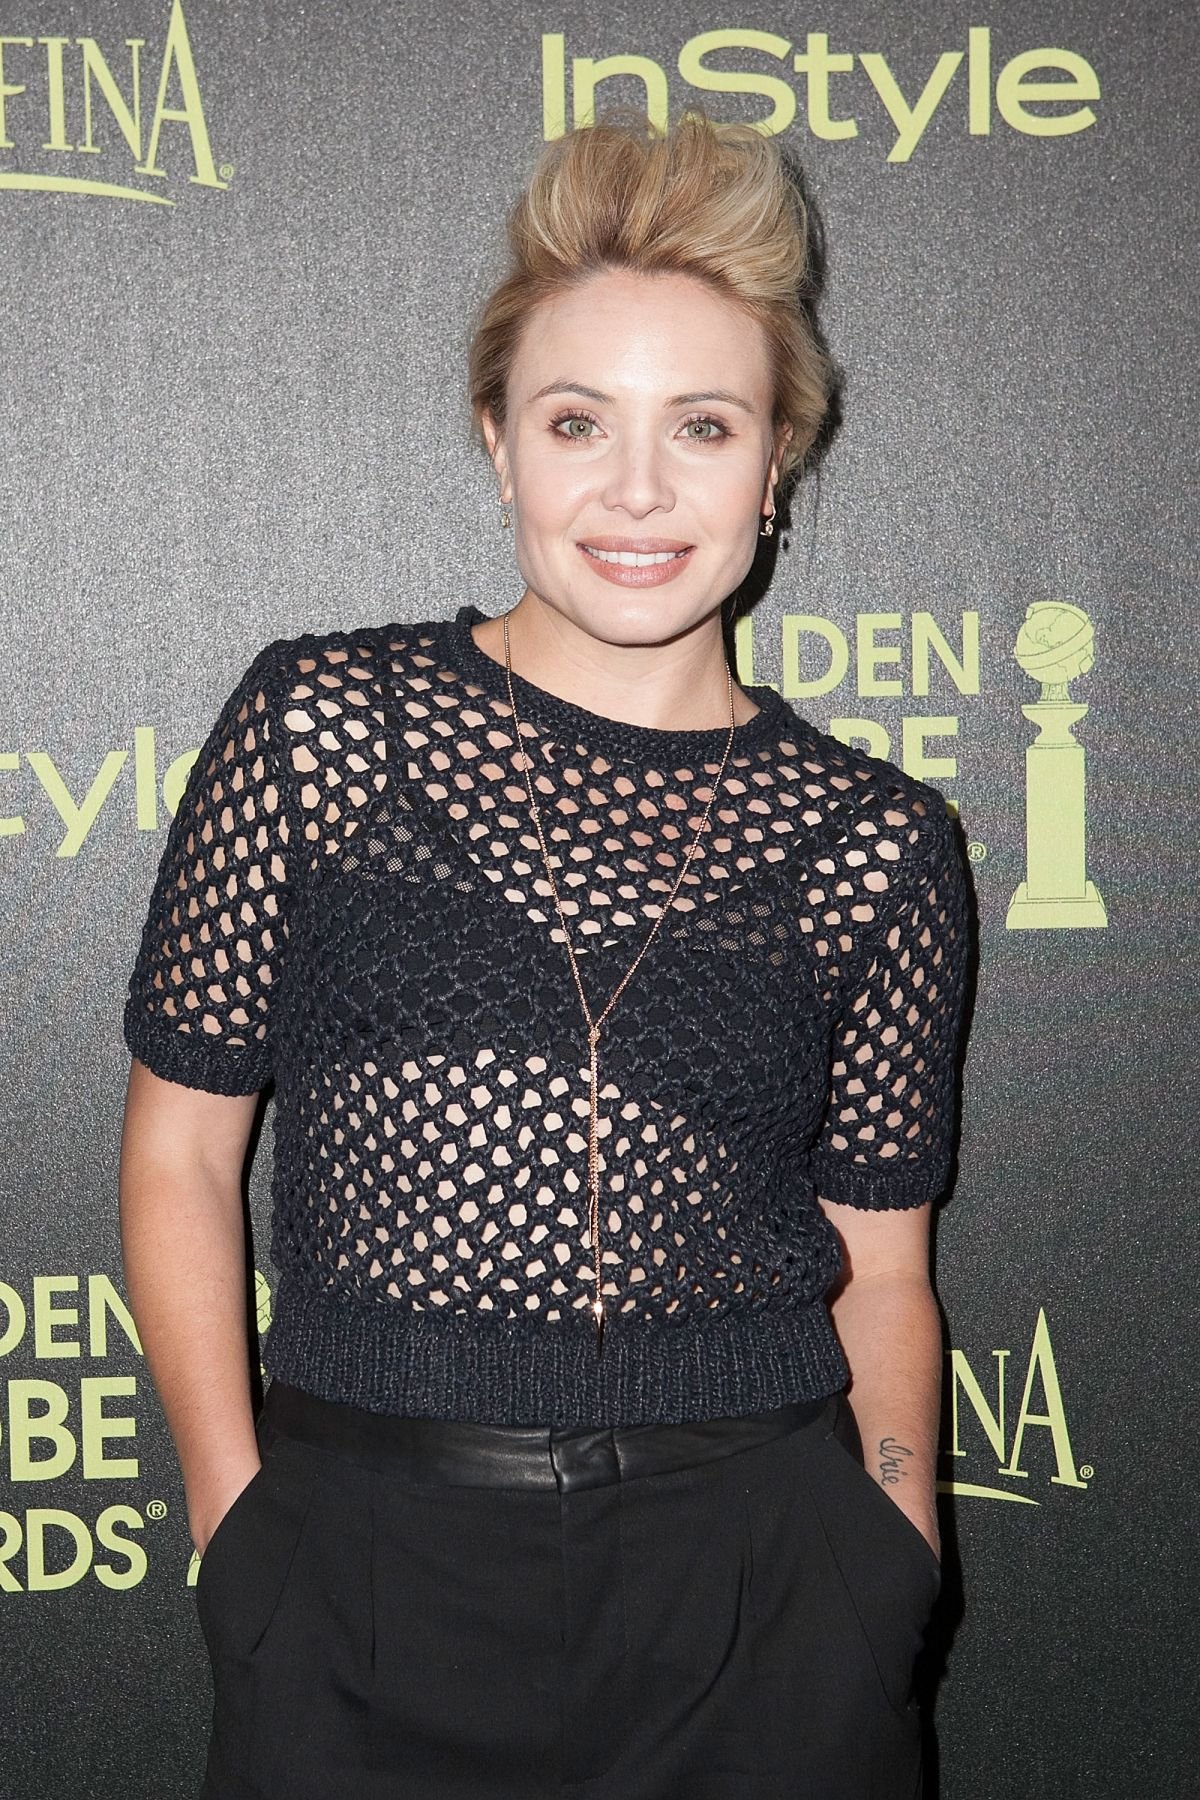 Leah Pipes Nude Photos 19